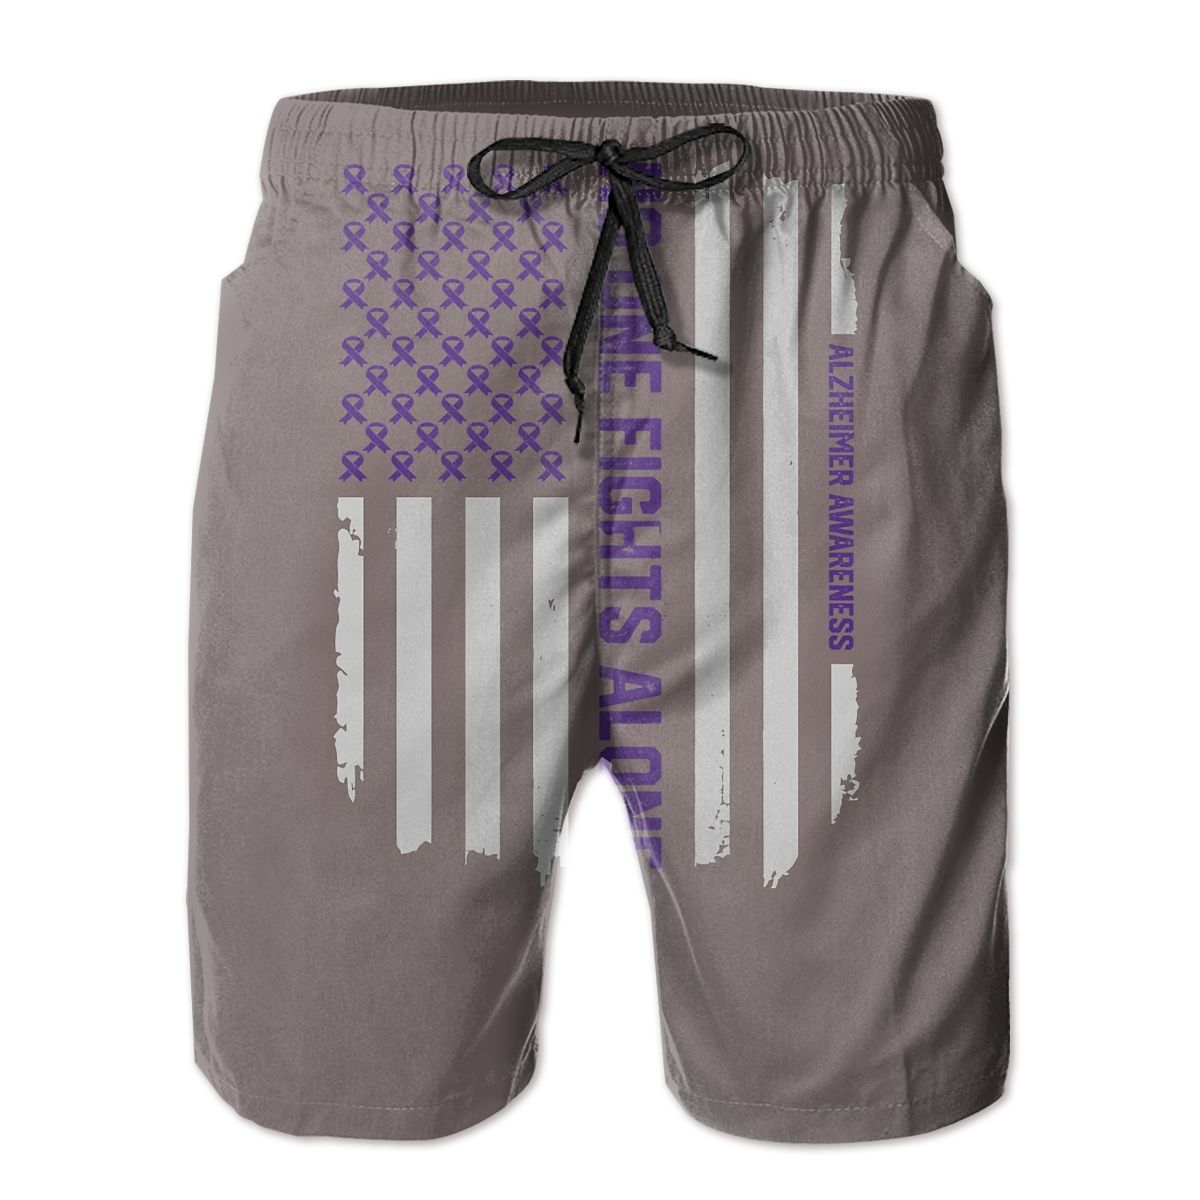 Male Shorts Causal R333 Breathable Quick Dry Humor Graphicbasketball Alzheimer S Awareness